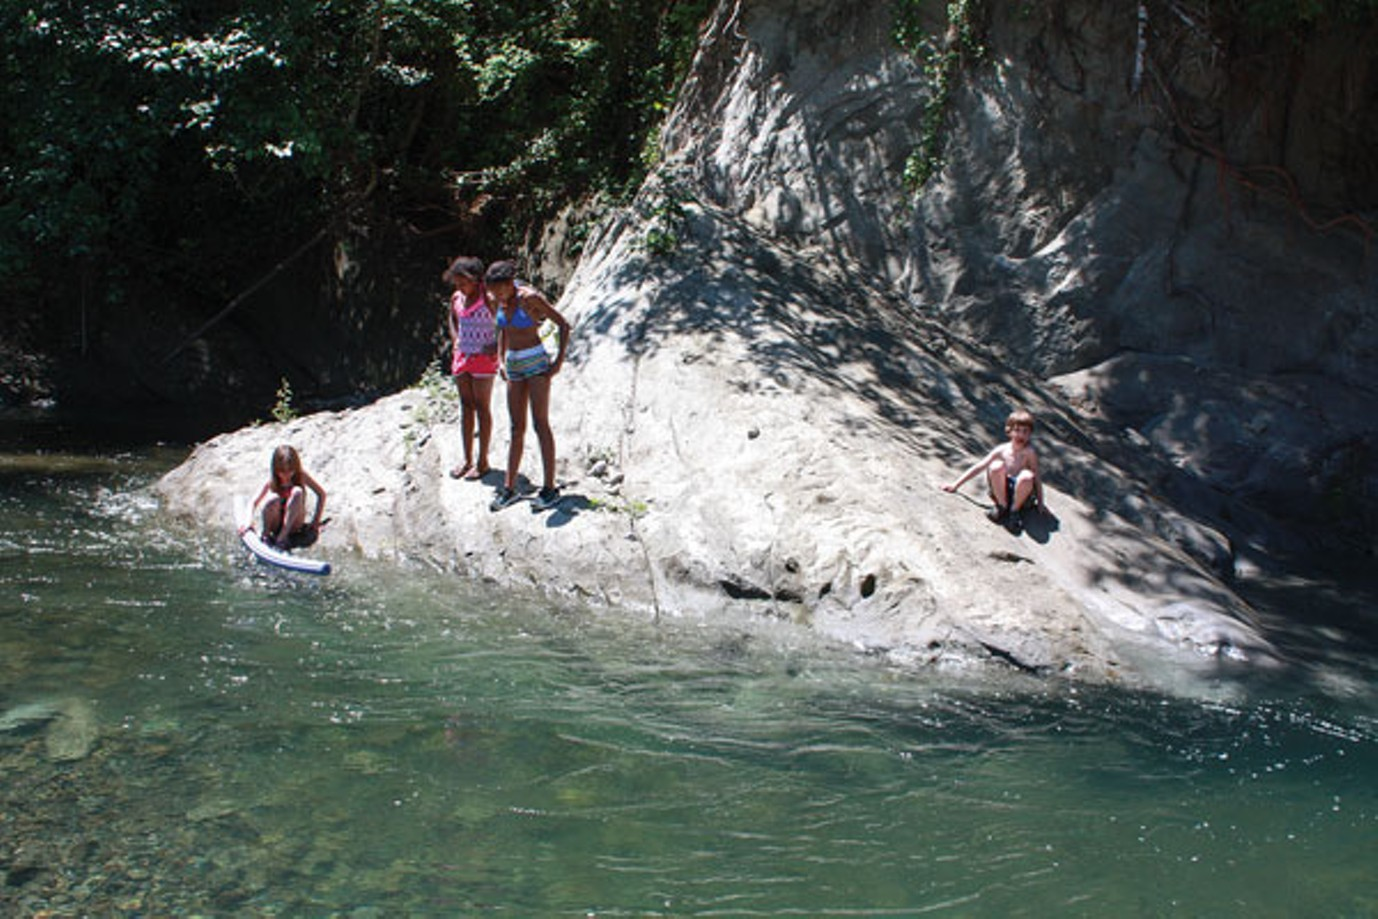 Swimmer's Delight, voted Best Swimming Hole in 2013 by North Coast Journal readers. - PHOTO BY CHRISTIAN PENNINGTON